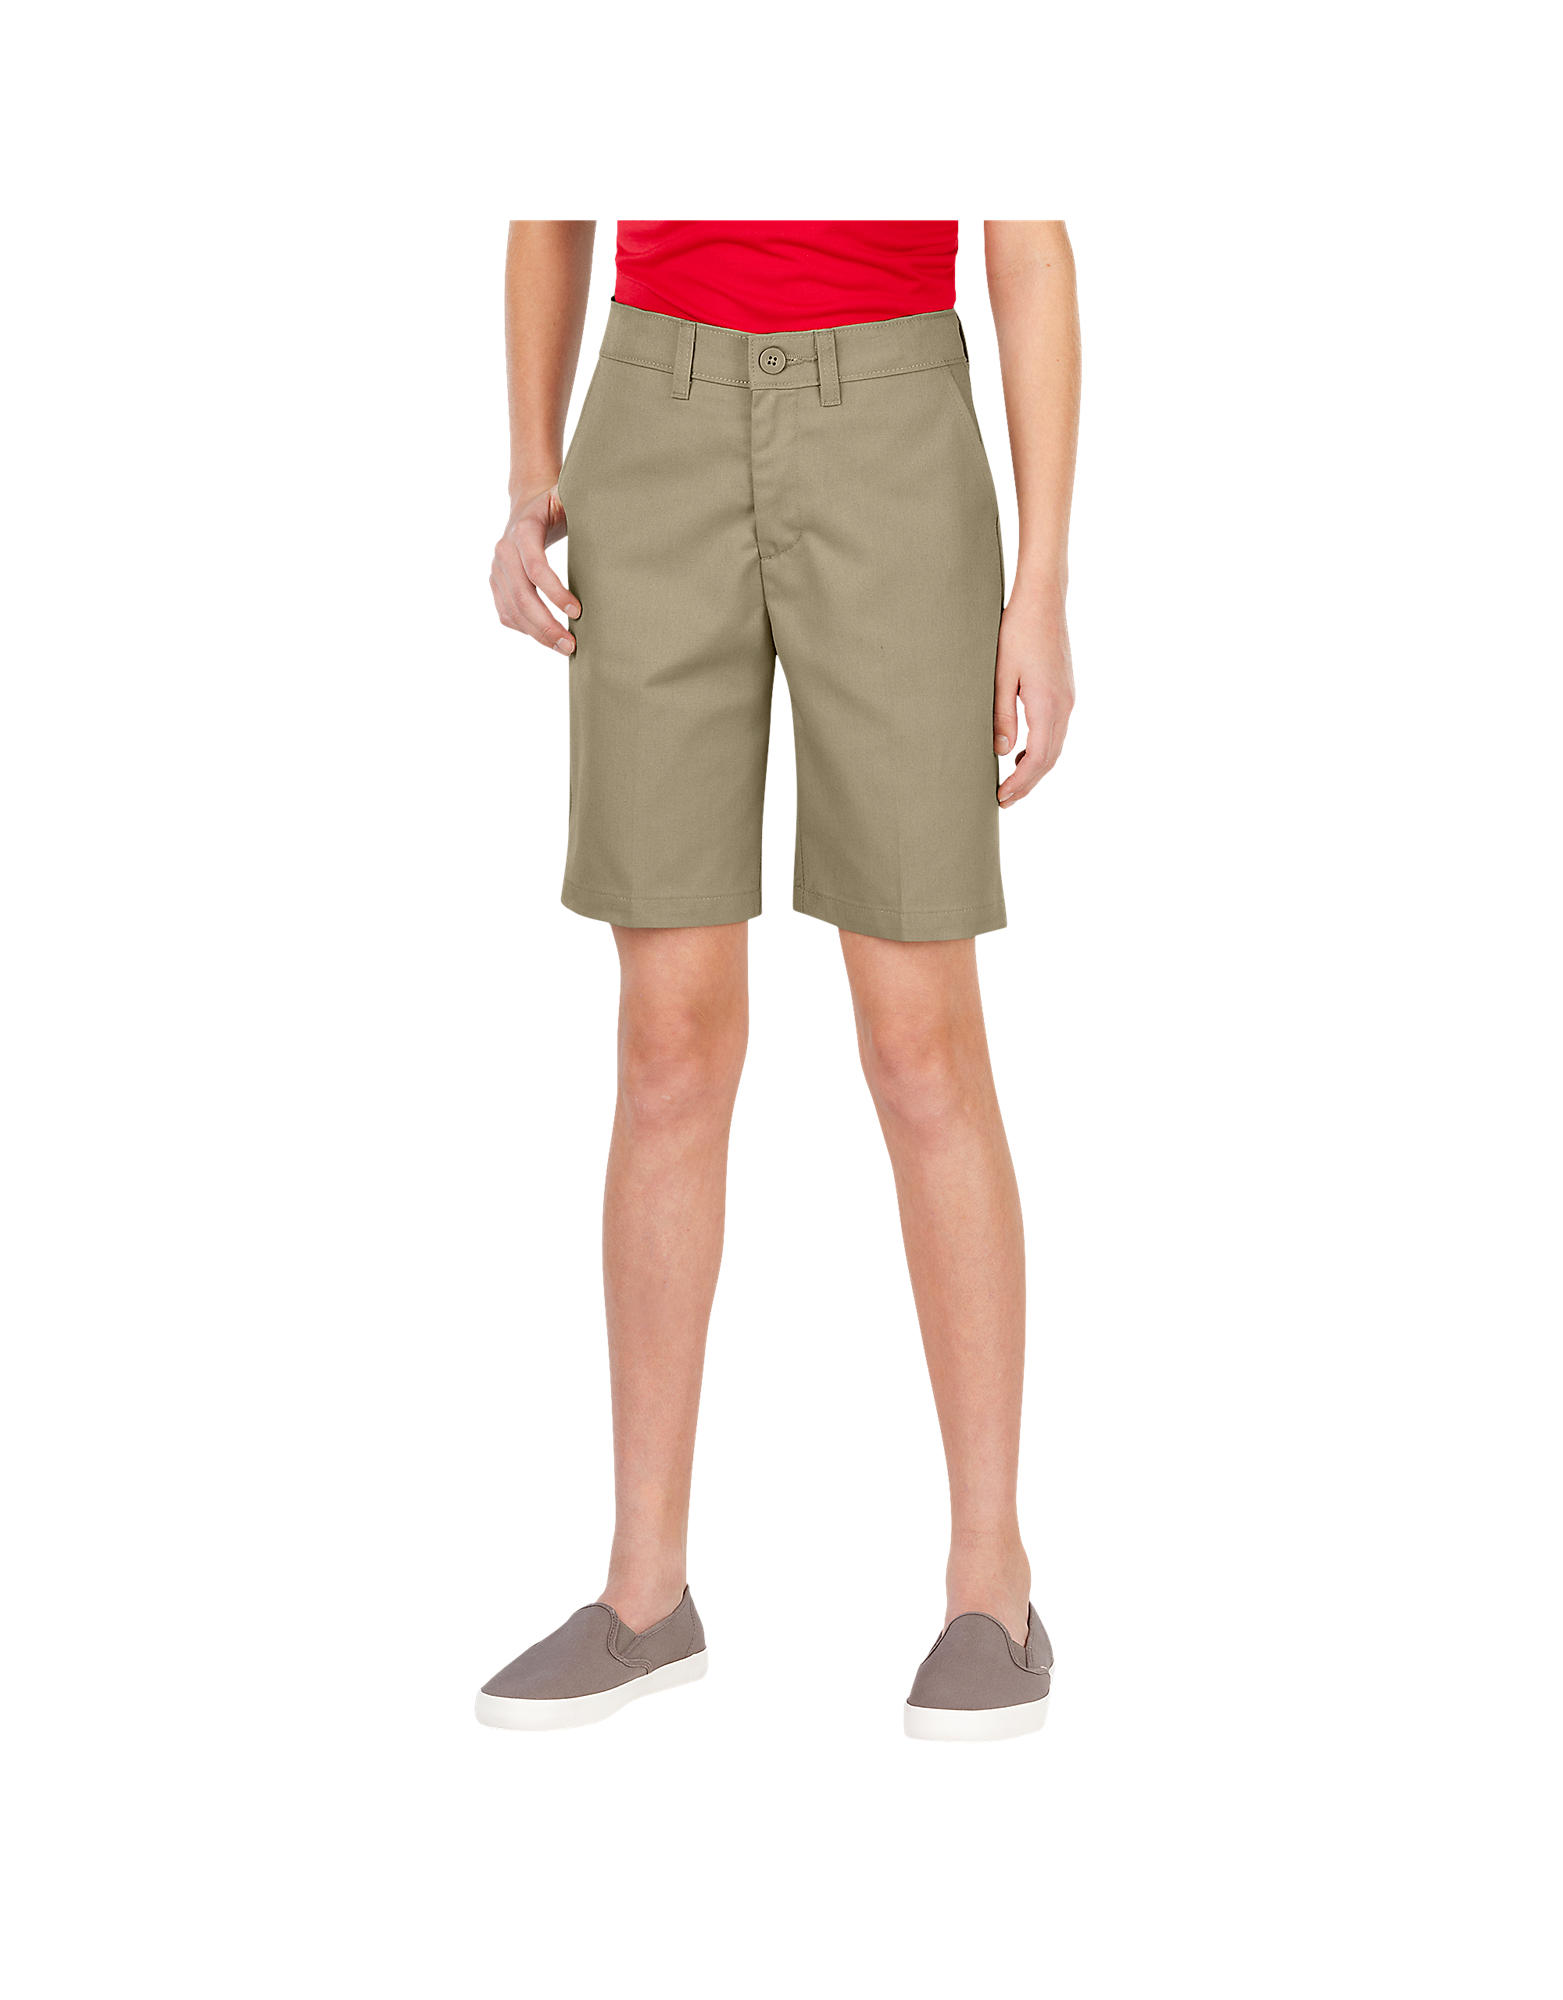 Girls' FlexWaist® Slim Fit Flat Front Shorts, 7-20 - Desert Khaki (DS)